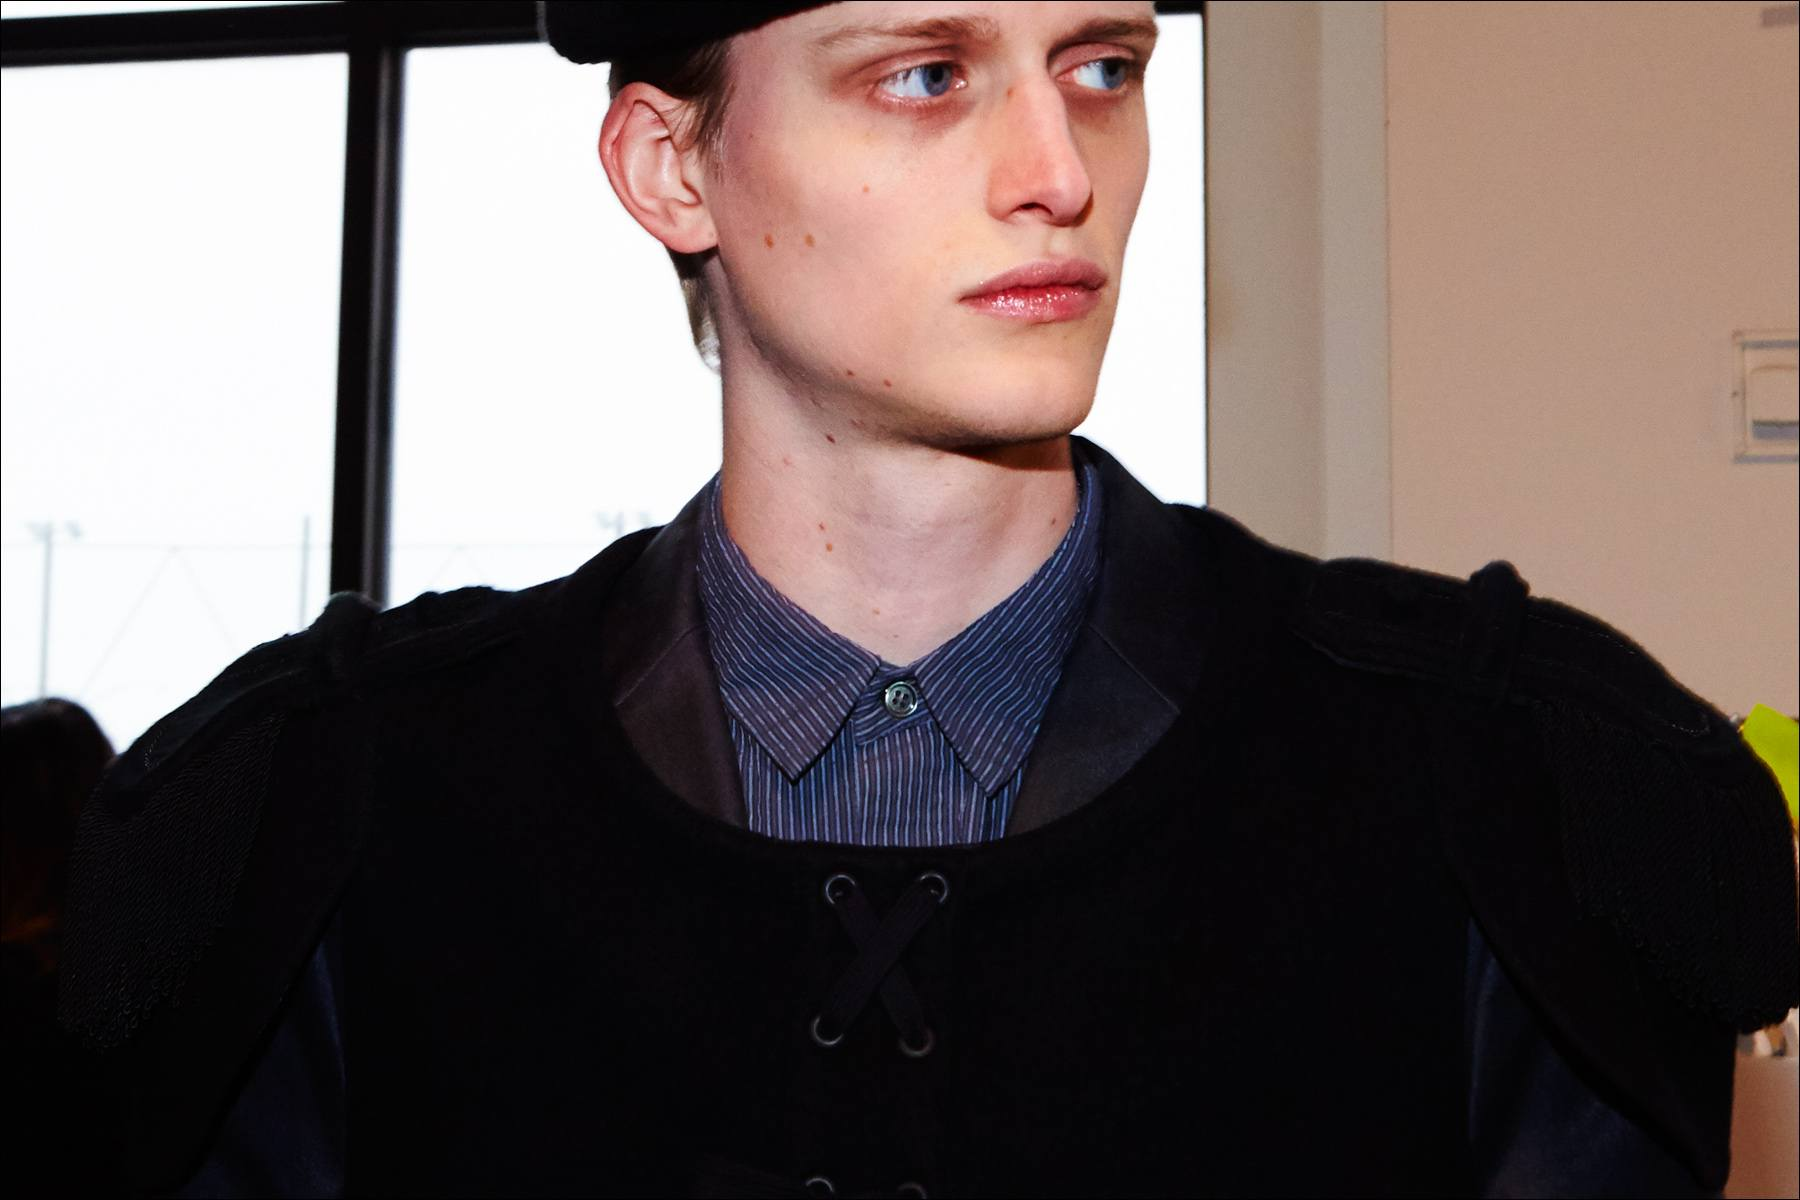 Model Alexander Newman wears an epaulet backstage at the Robert Geller A/W17 menswear show. Photographed in New York City by Alexander Thompson for Ponyboy magazine.